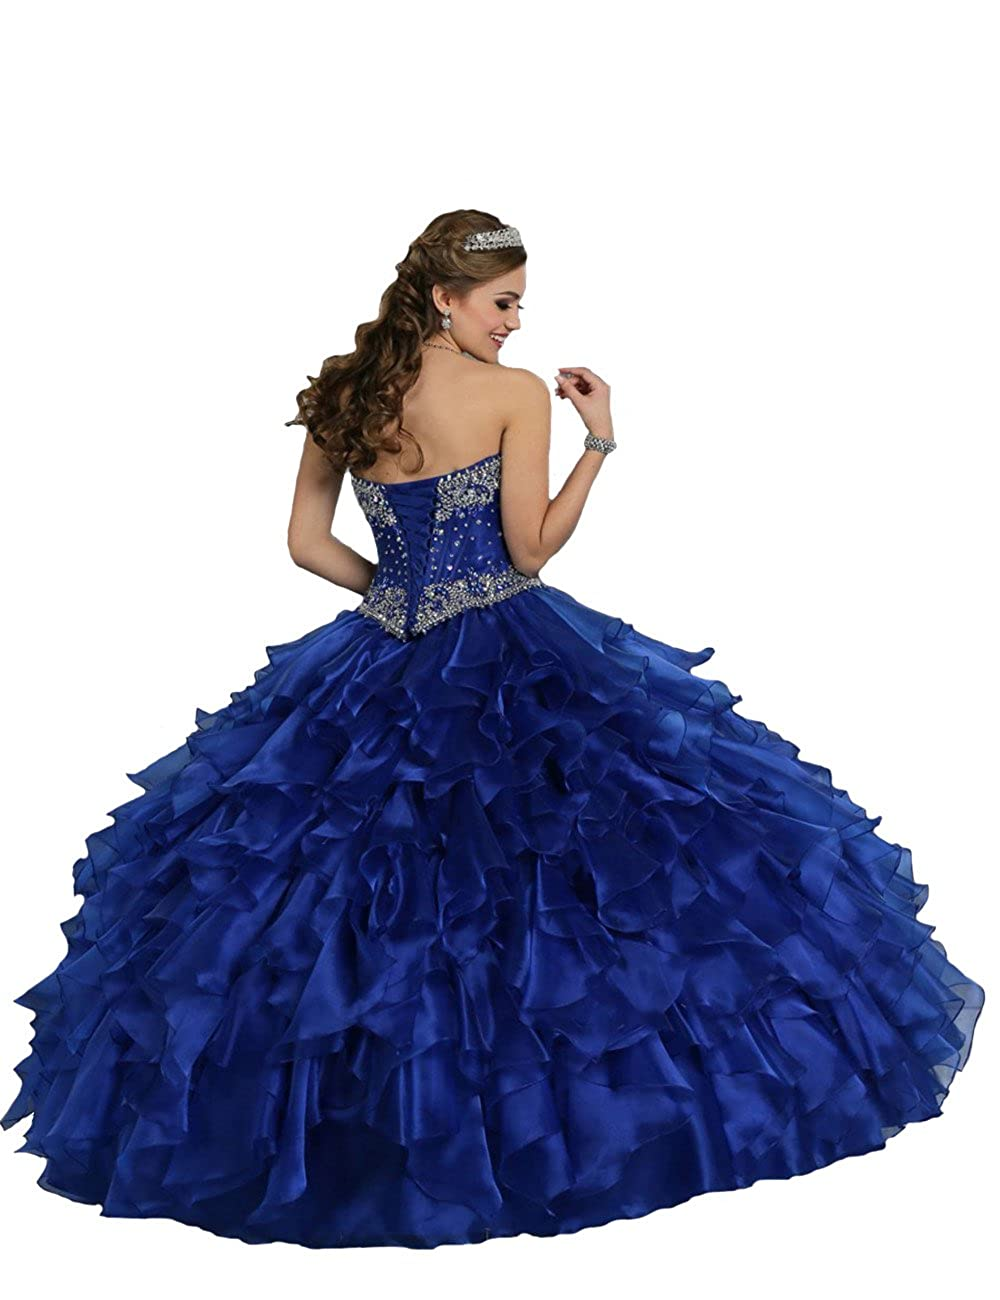 434a3ae1685 Amazon.com  TaYan Women s Prom Ball Gowns Beaded Sweet 16 Long Quinceanera  Dresses  Clothing